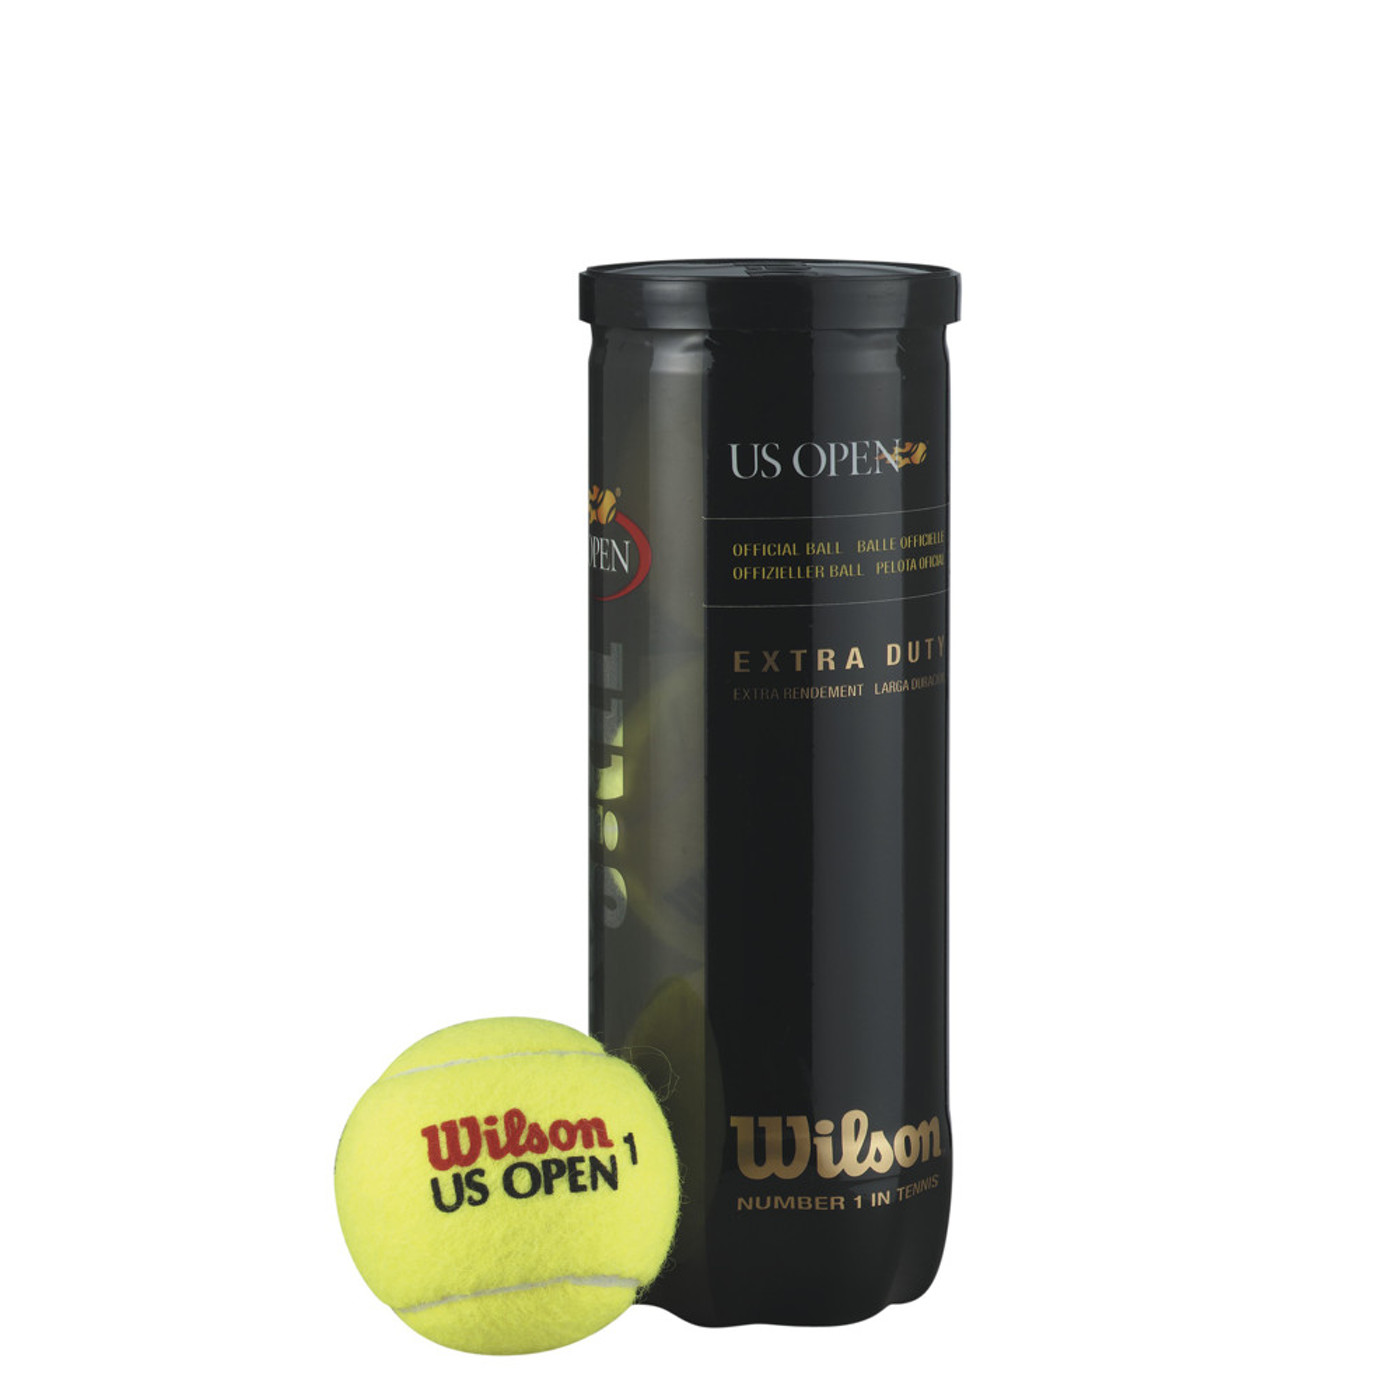 WILSON Tennisball US OPEN 3er